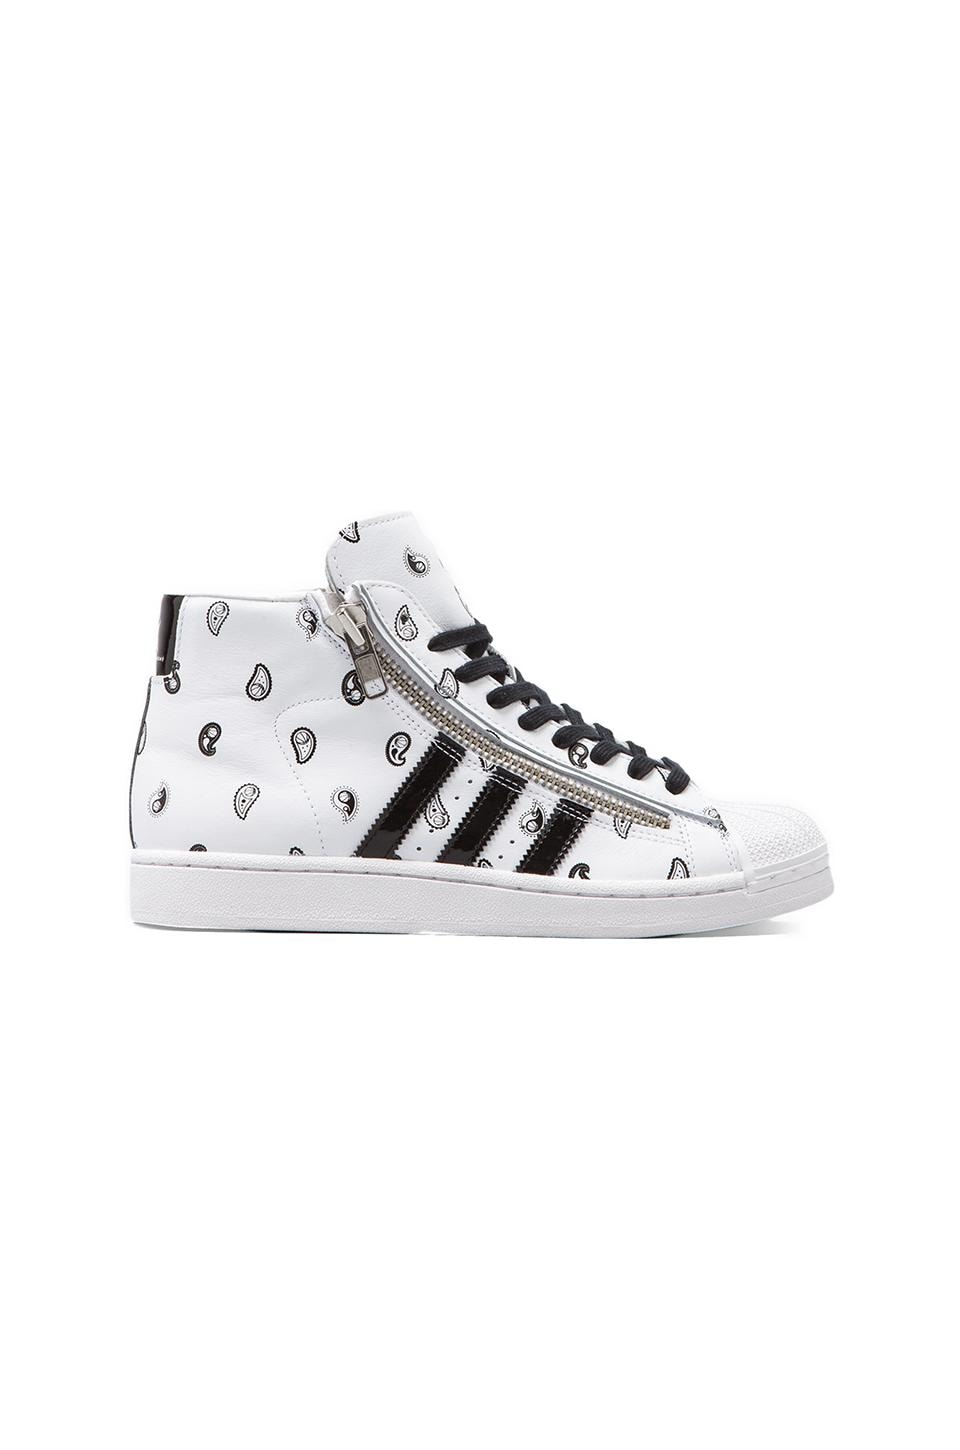 adidas Originals x Opening Ceremony Pro Model Bball en Running White/Black/Running White